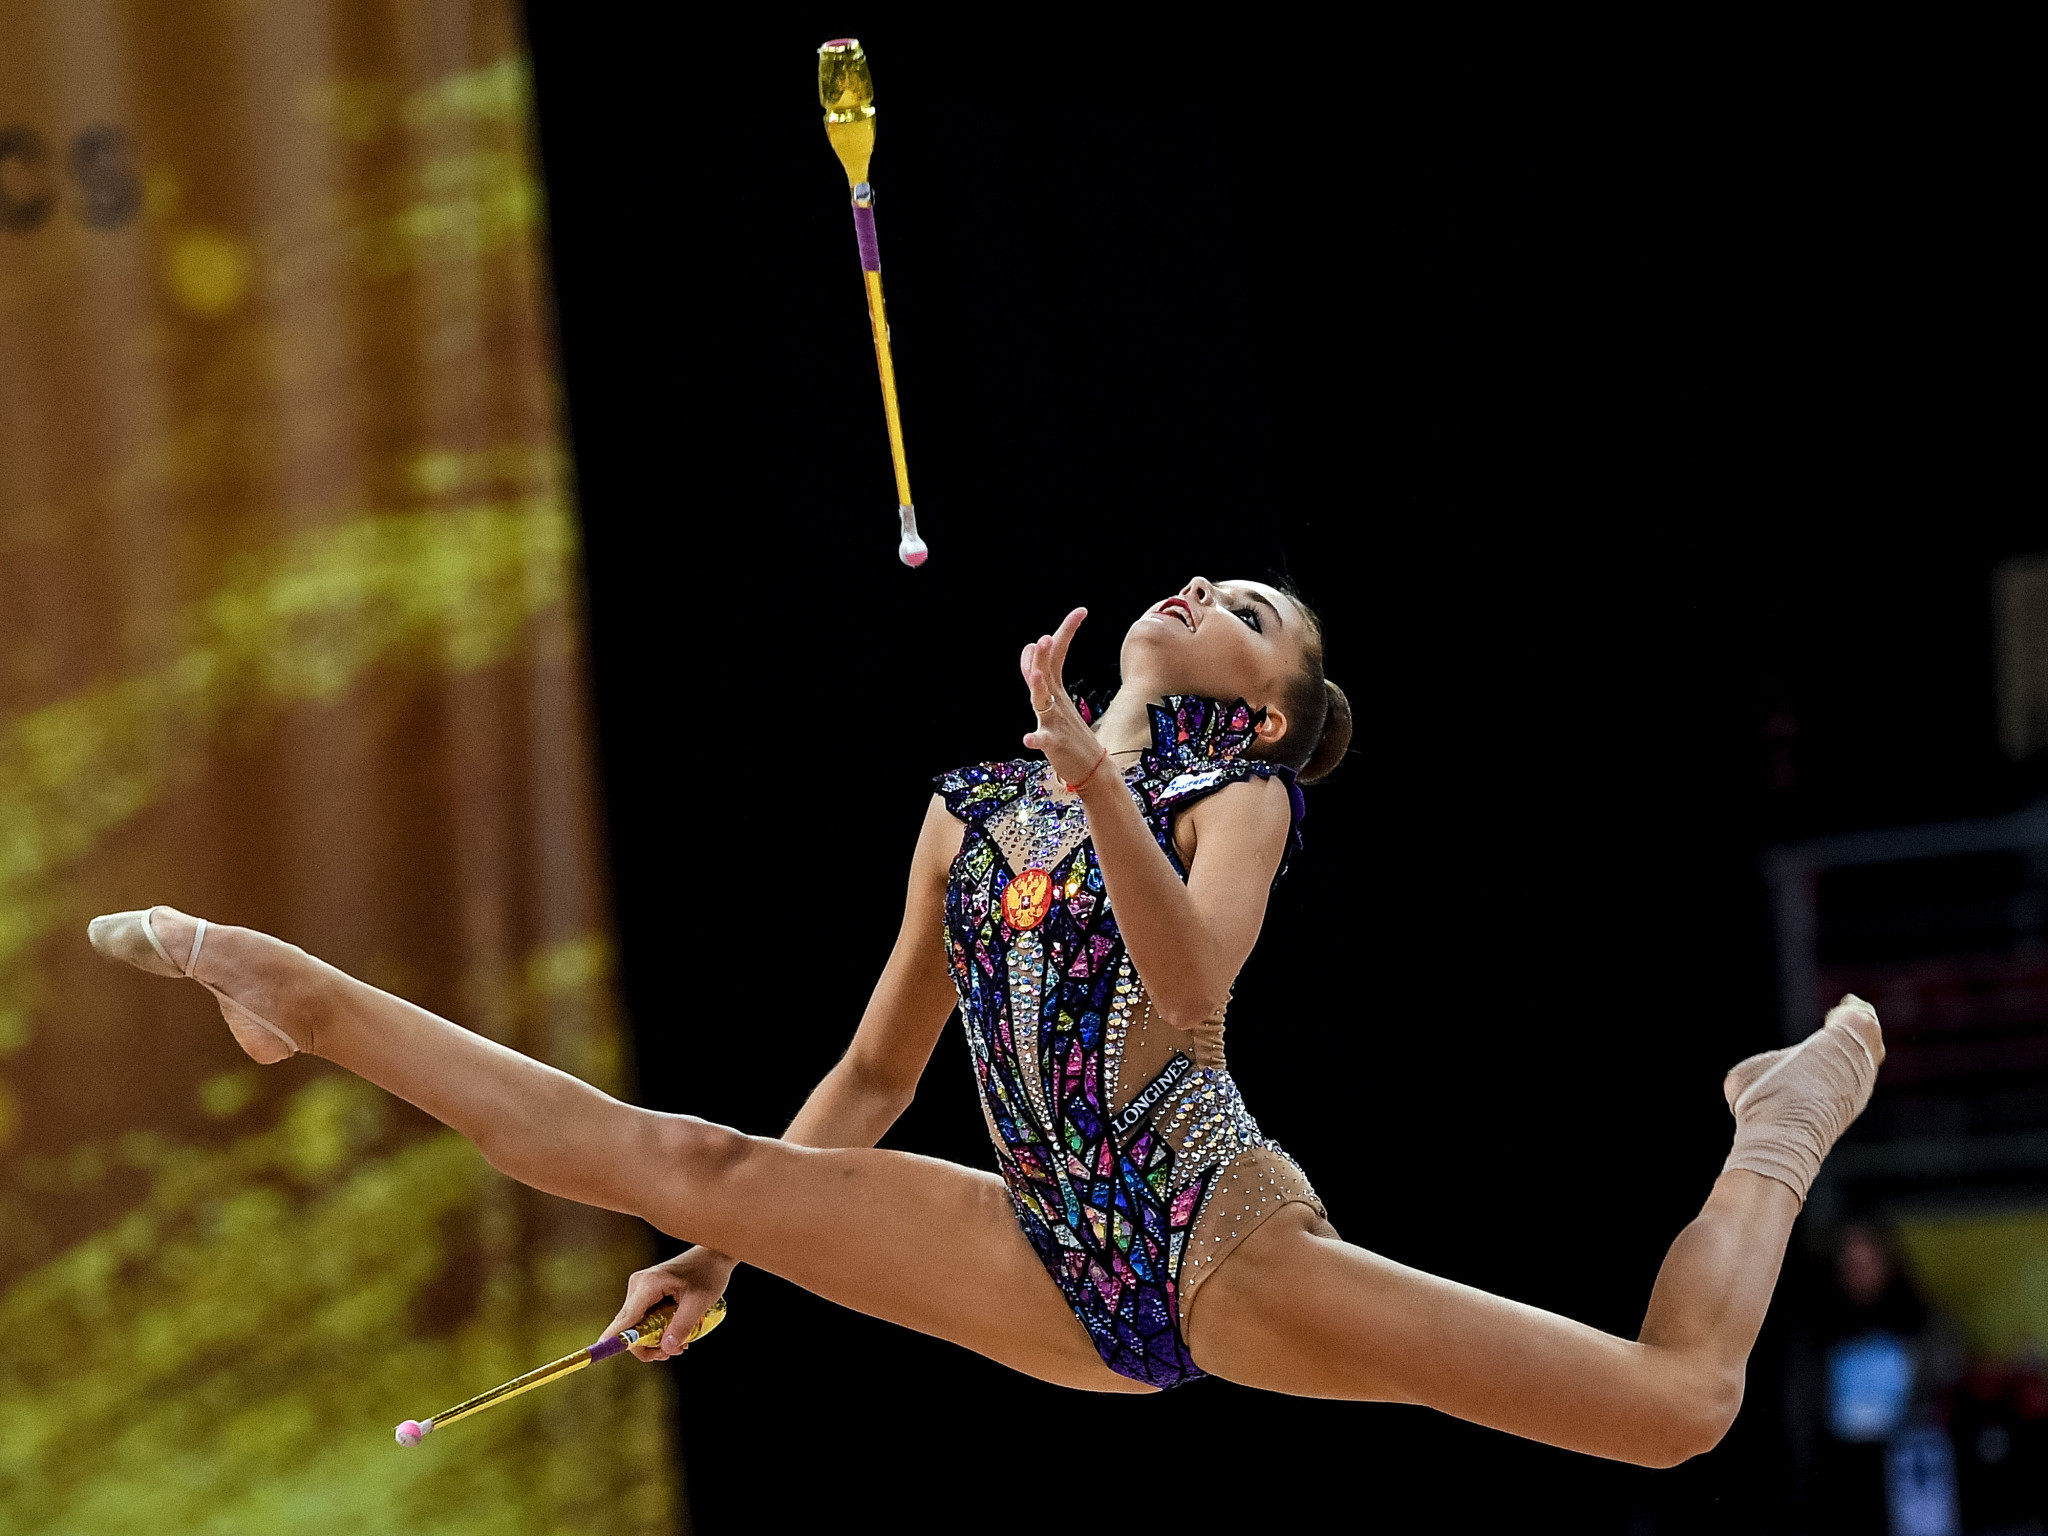 Averina earns two further titles on final day of Rhythmic Gymnastics World Cup in Baku